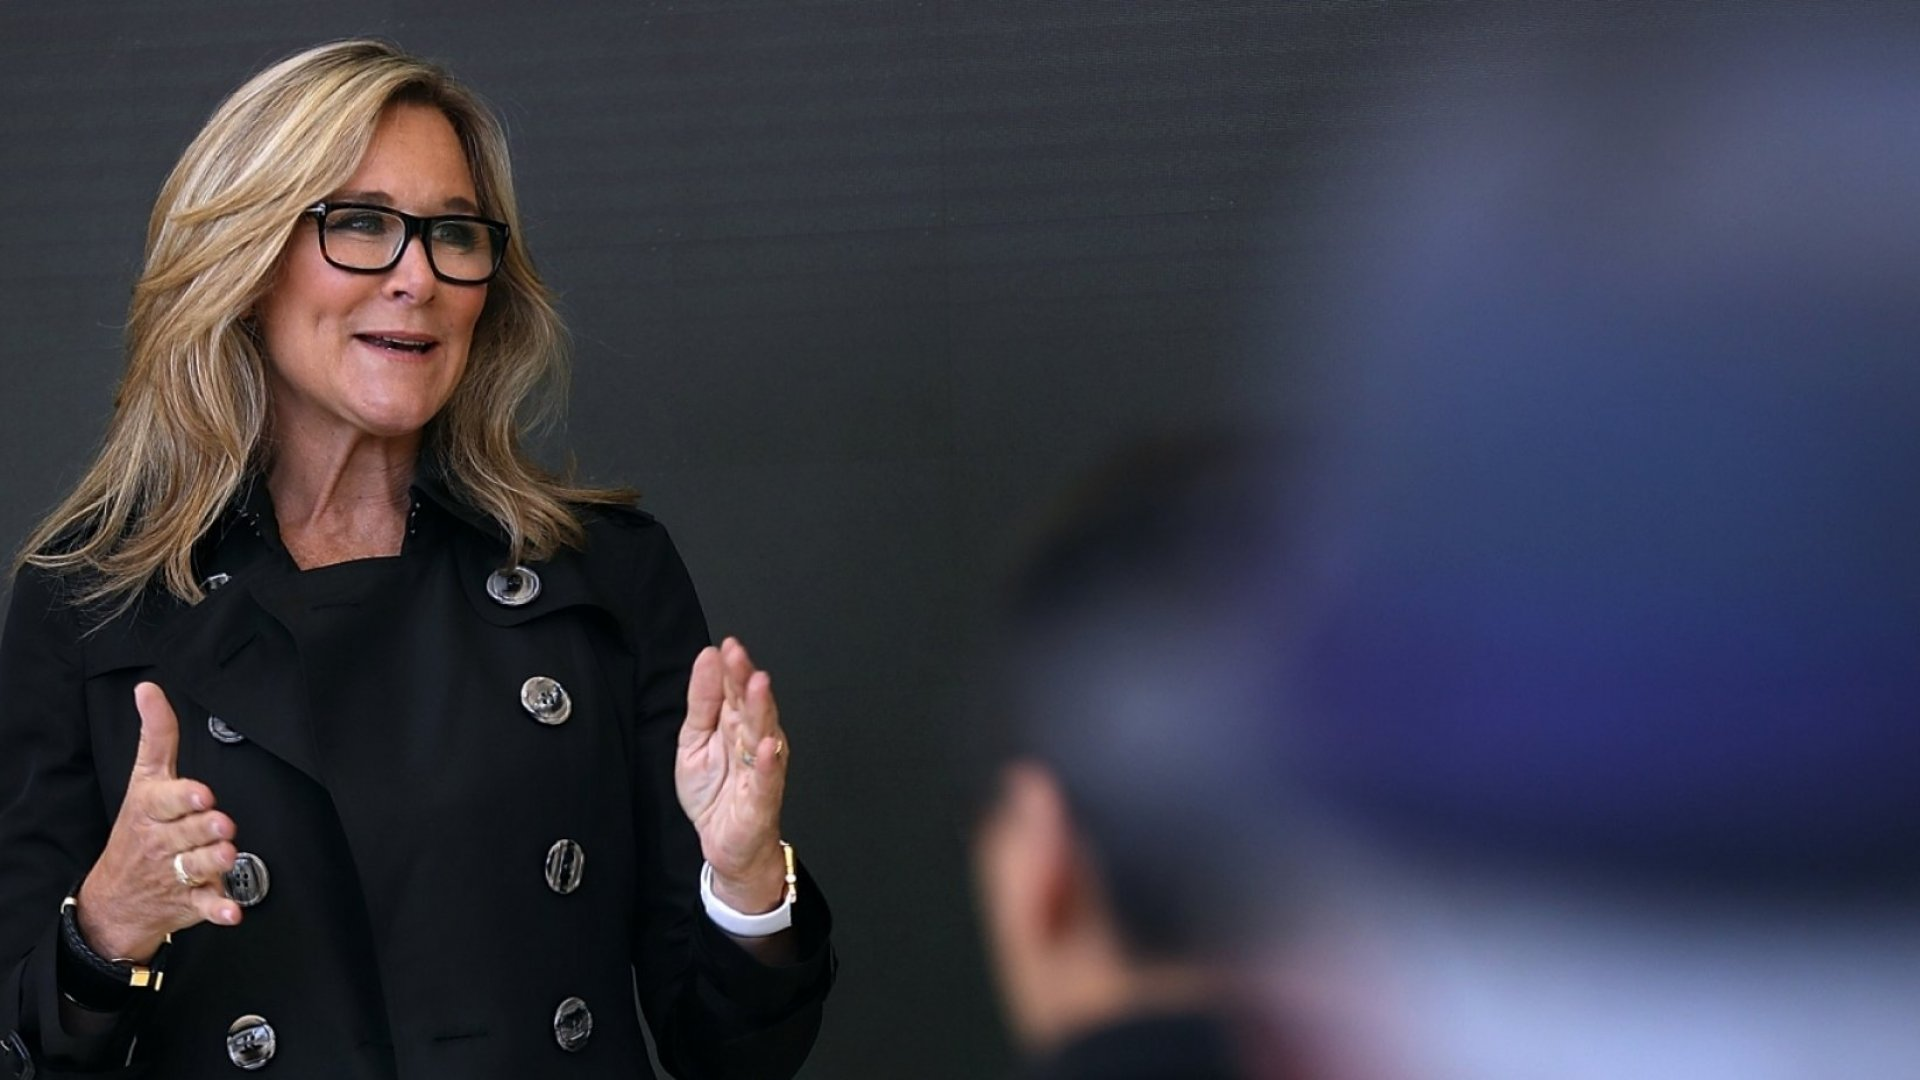 Angela Ahrendts, senior vice president of retail strategy at Apple.